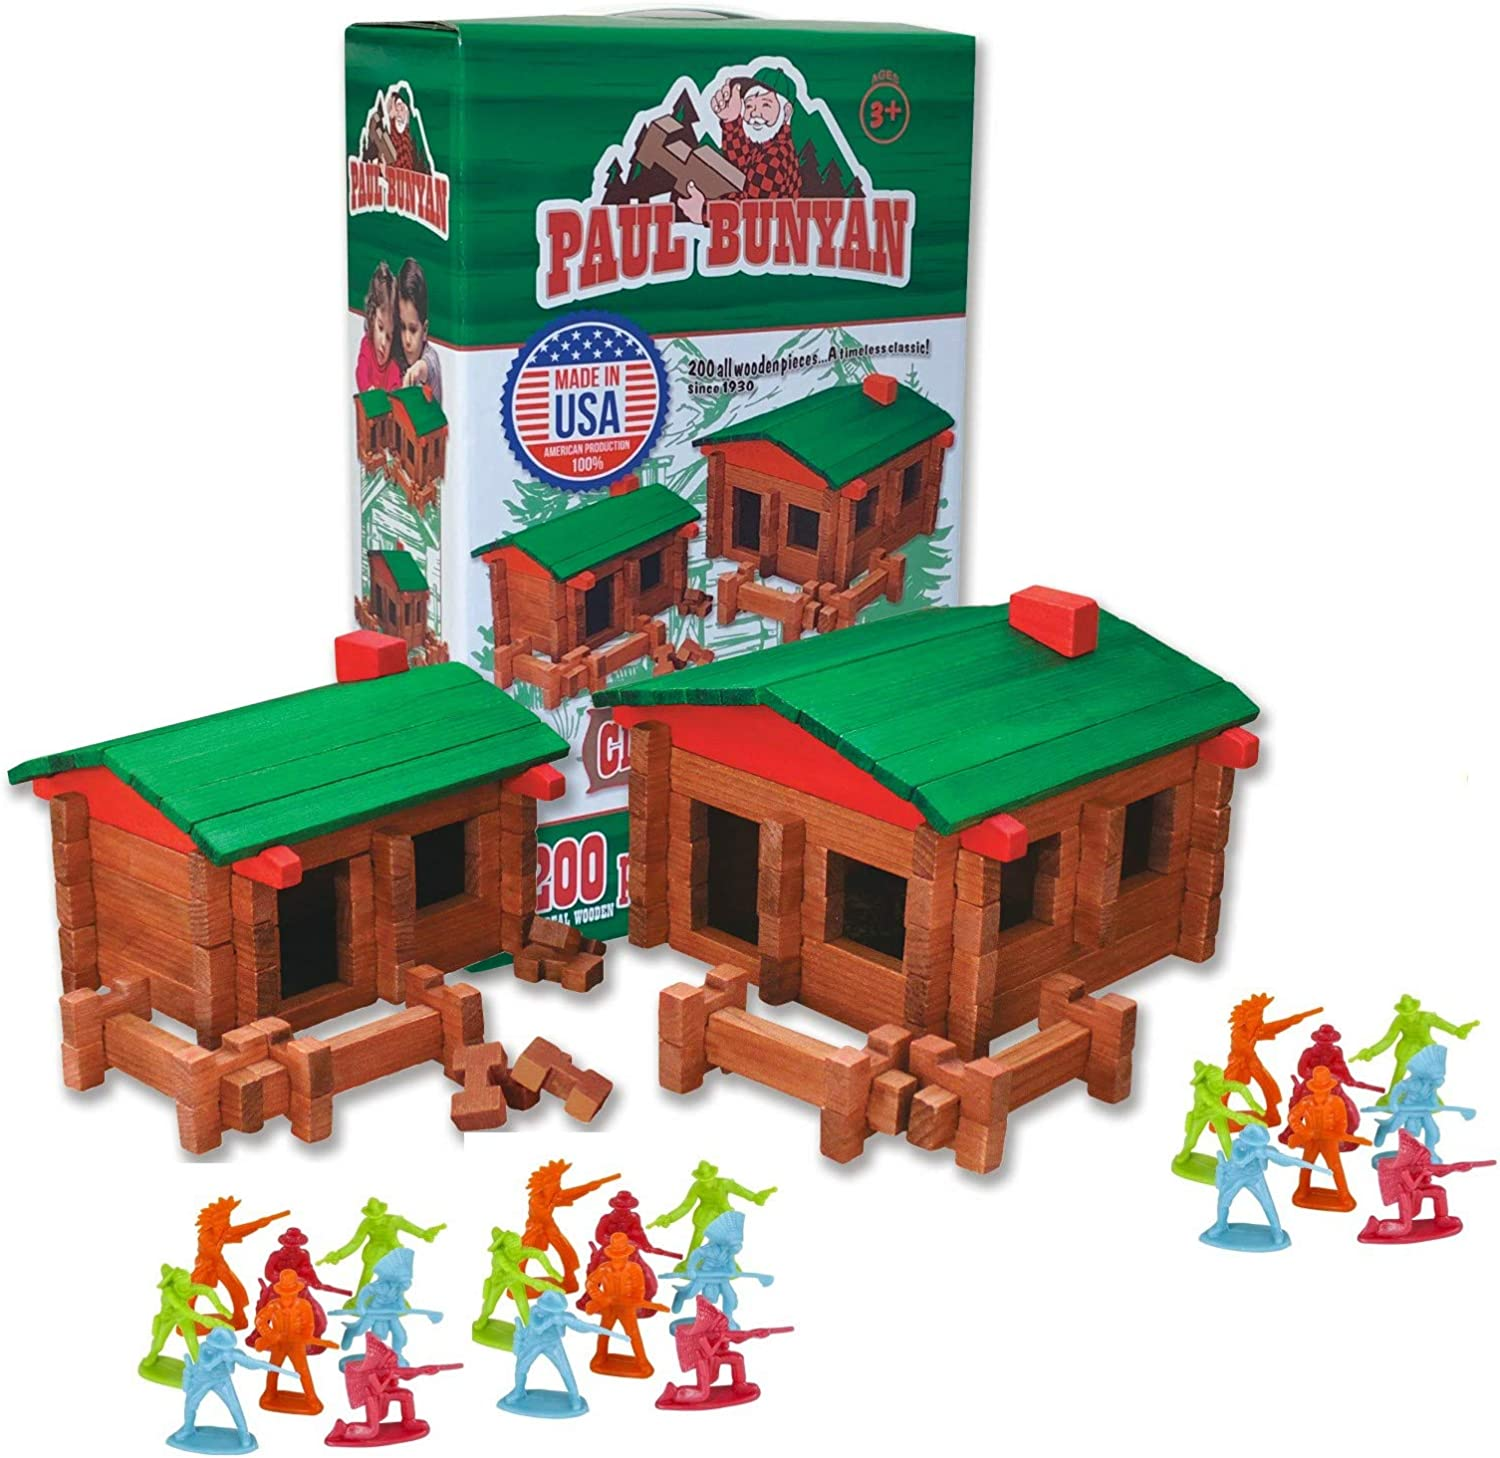 GRANITE MOUNTAIN PRODUCTS Paul Bunyan Log Building Toy Set with Cowboys and Indians: 200 Piece All Wood Log Cabin Building Set with 24 Cowboy and Indian Figures